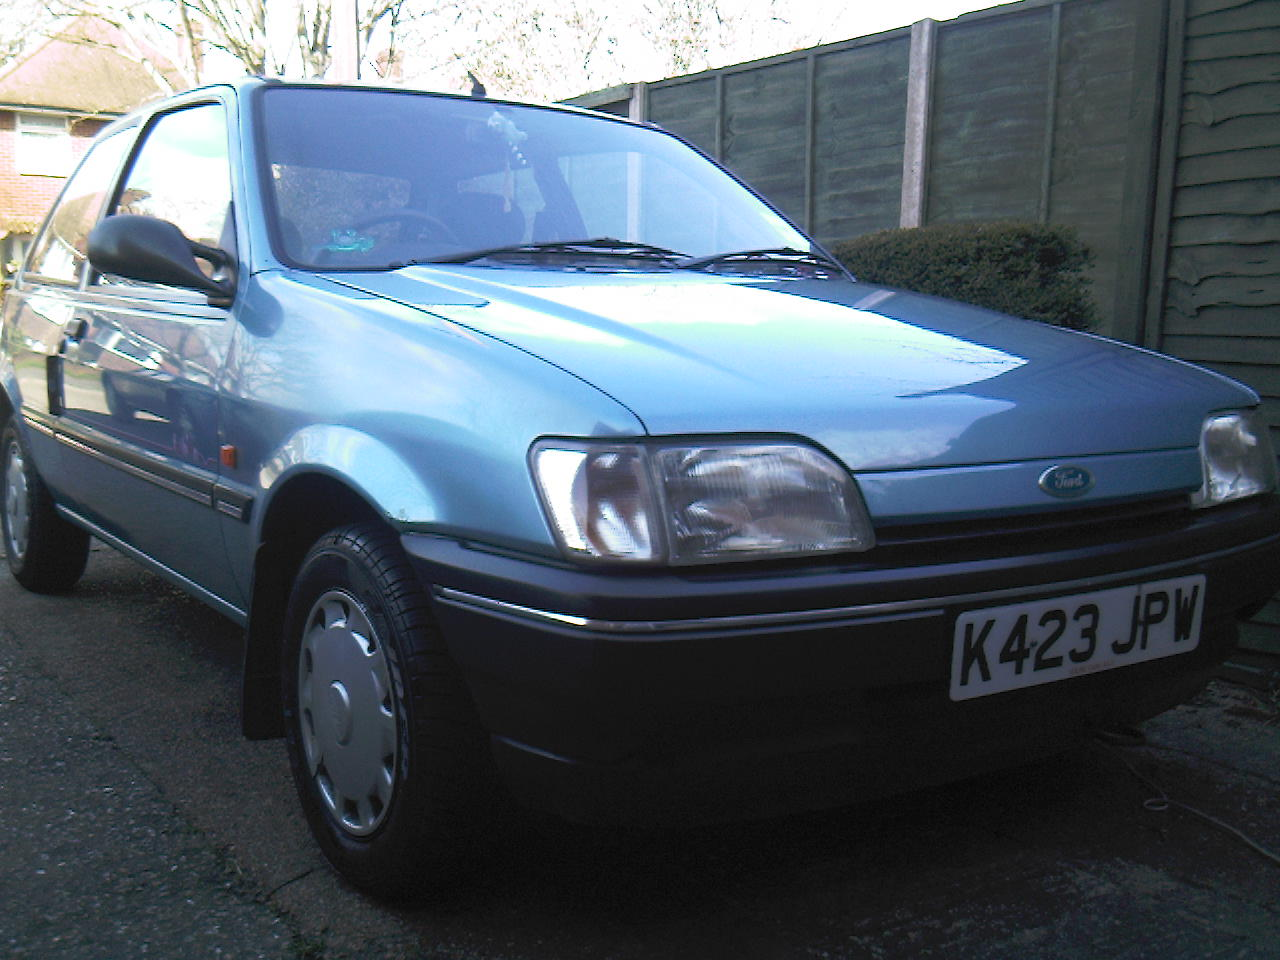 1993 Ford Fiesta picture